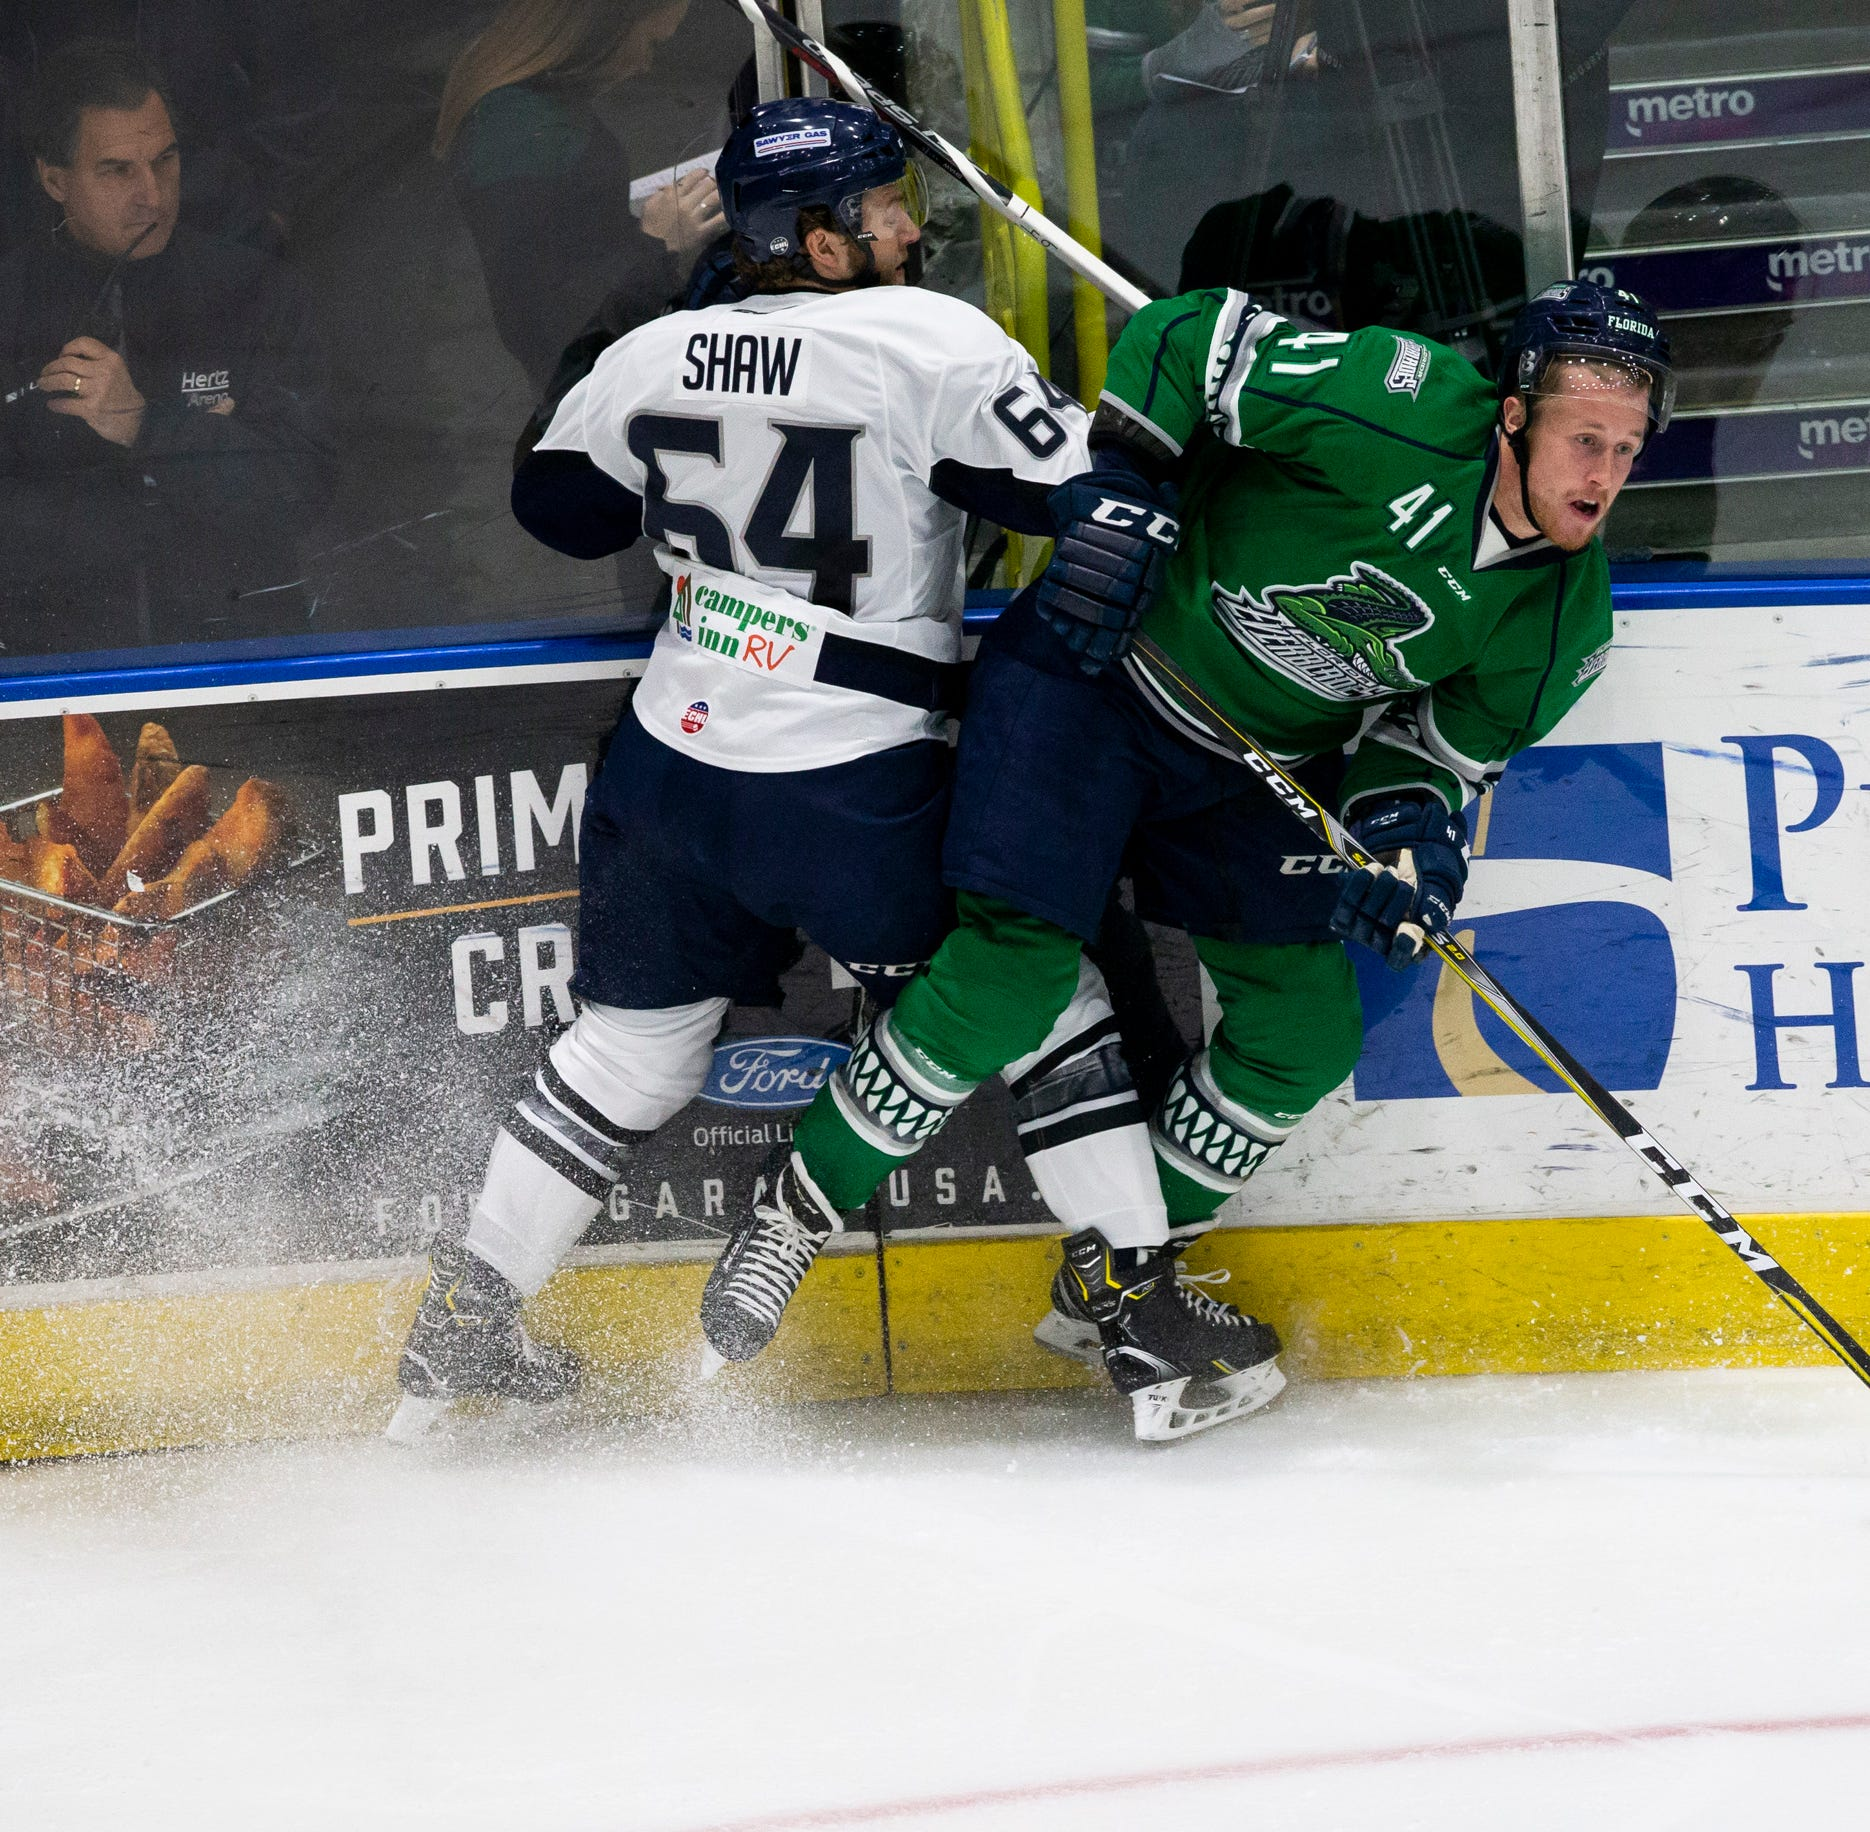 ECHL hockey: Everblades erupt in second period to eliminate Icemen in six games